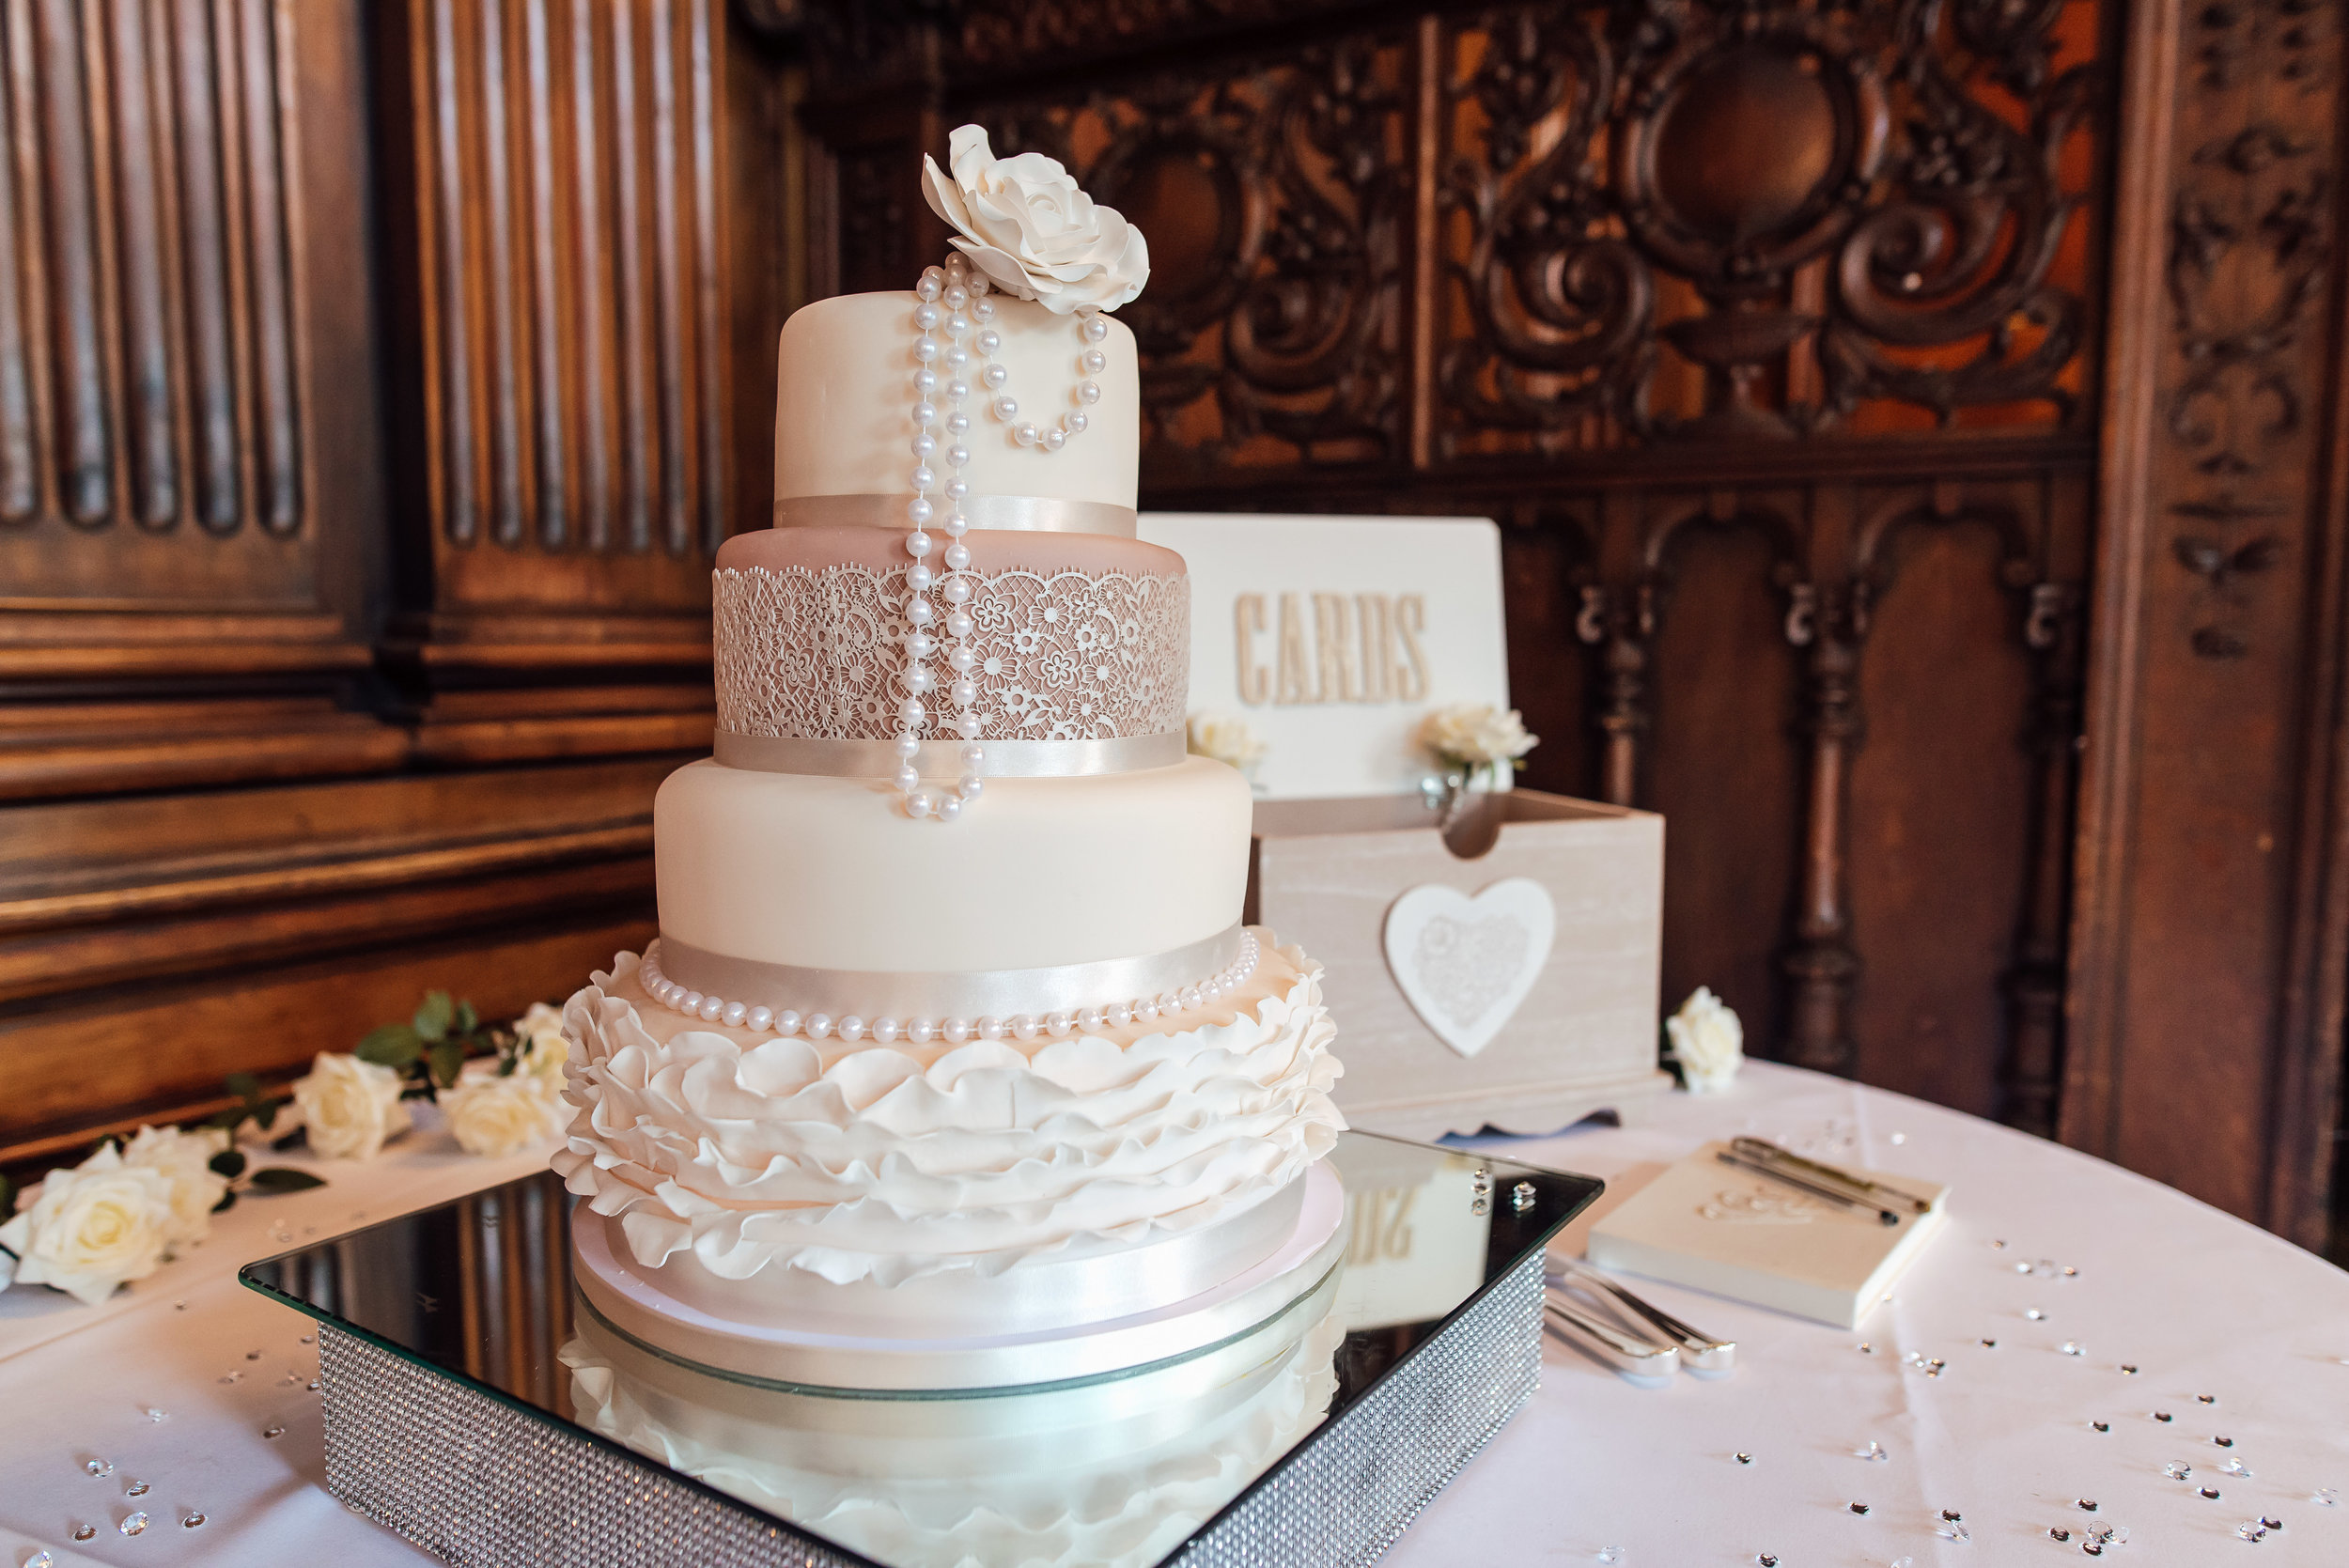 Wedding cake at Heatherden Hall wedding - Amy James Photography - Wedding photographer Hampshire Surrey and Berkshire